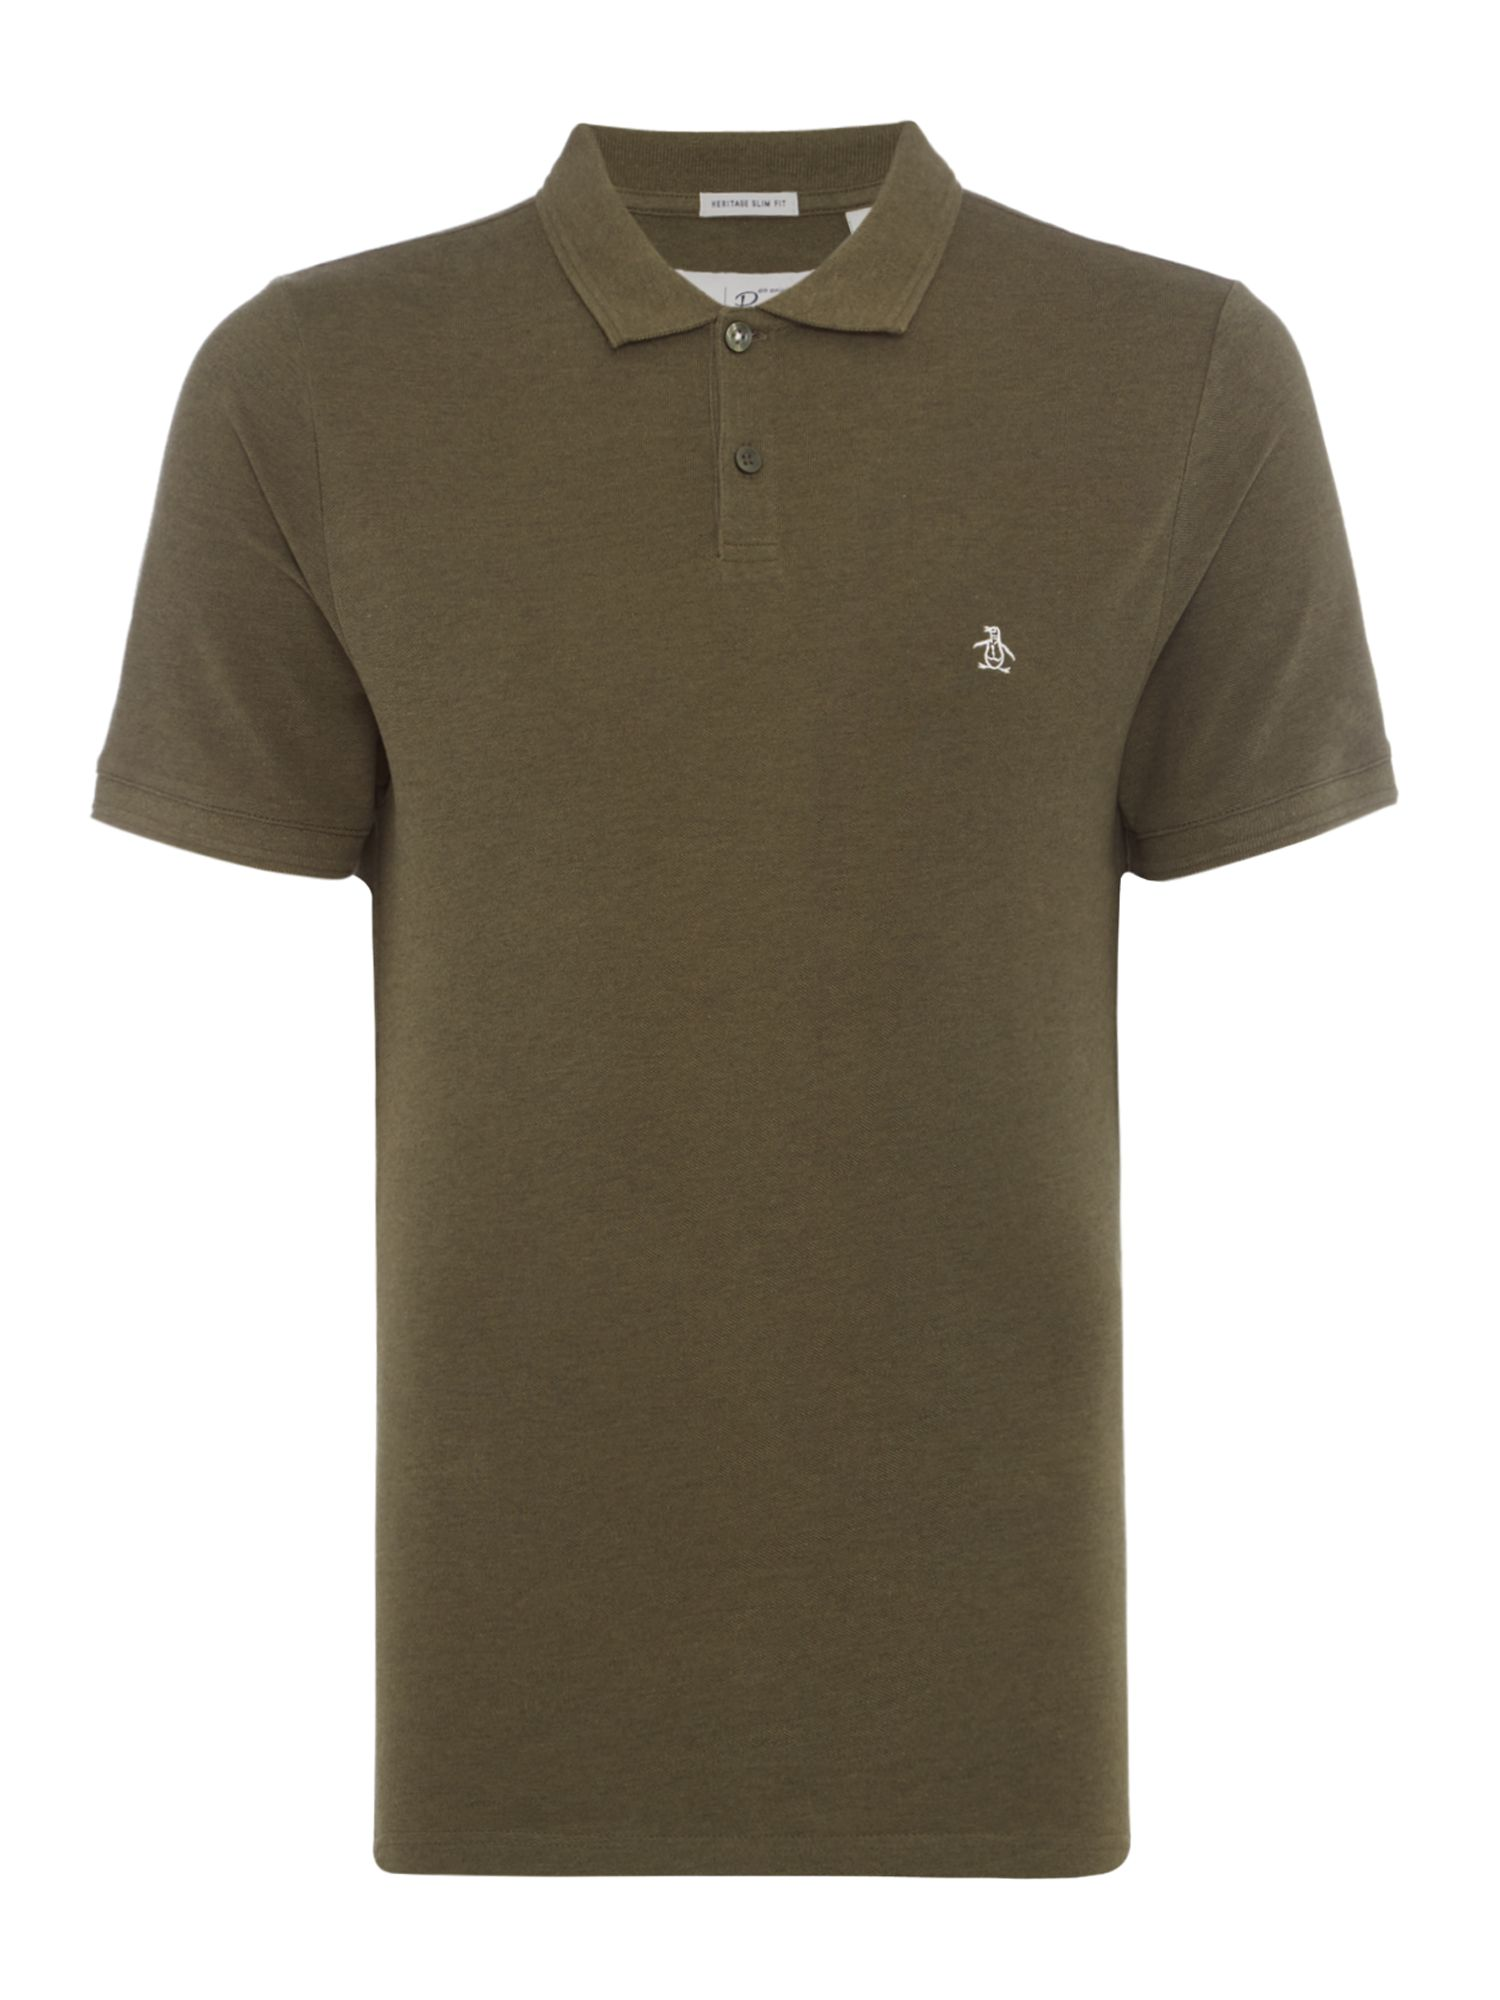 Men's Original Penguin Raised Rib Polo Shirt, Khaki